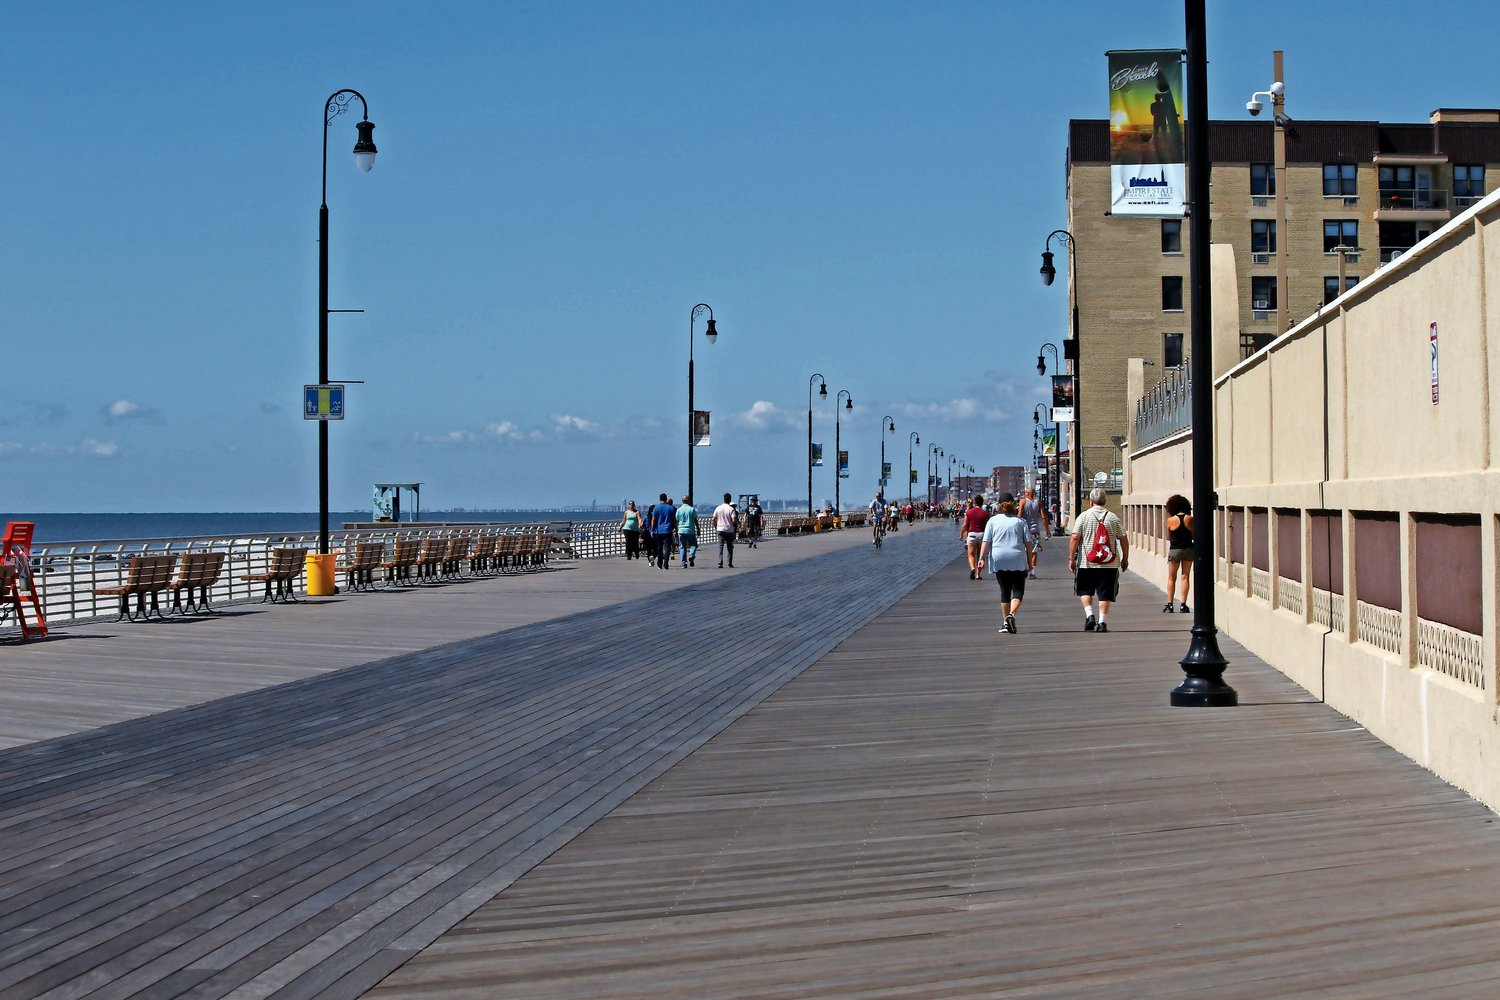 officials noted the city's recovery in the six years since Hurricane Sandy, including the reconstruction of the 2.2-mile boardwalk which was destroyed in the storm.